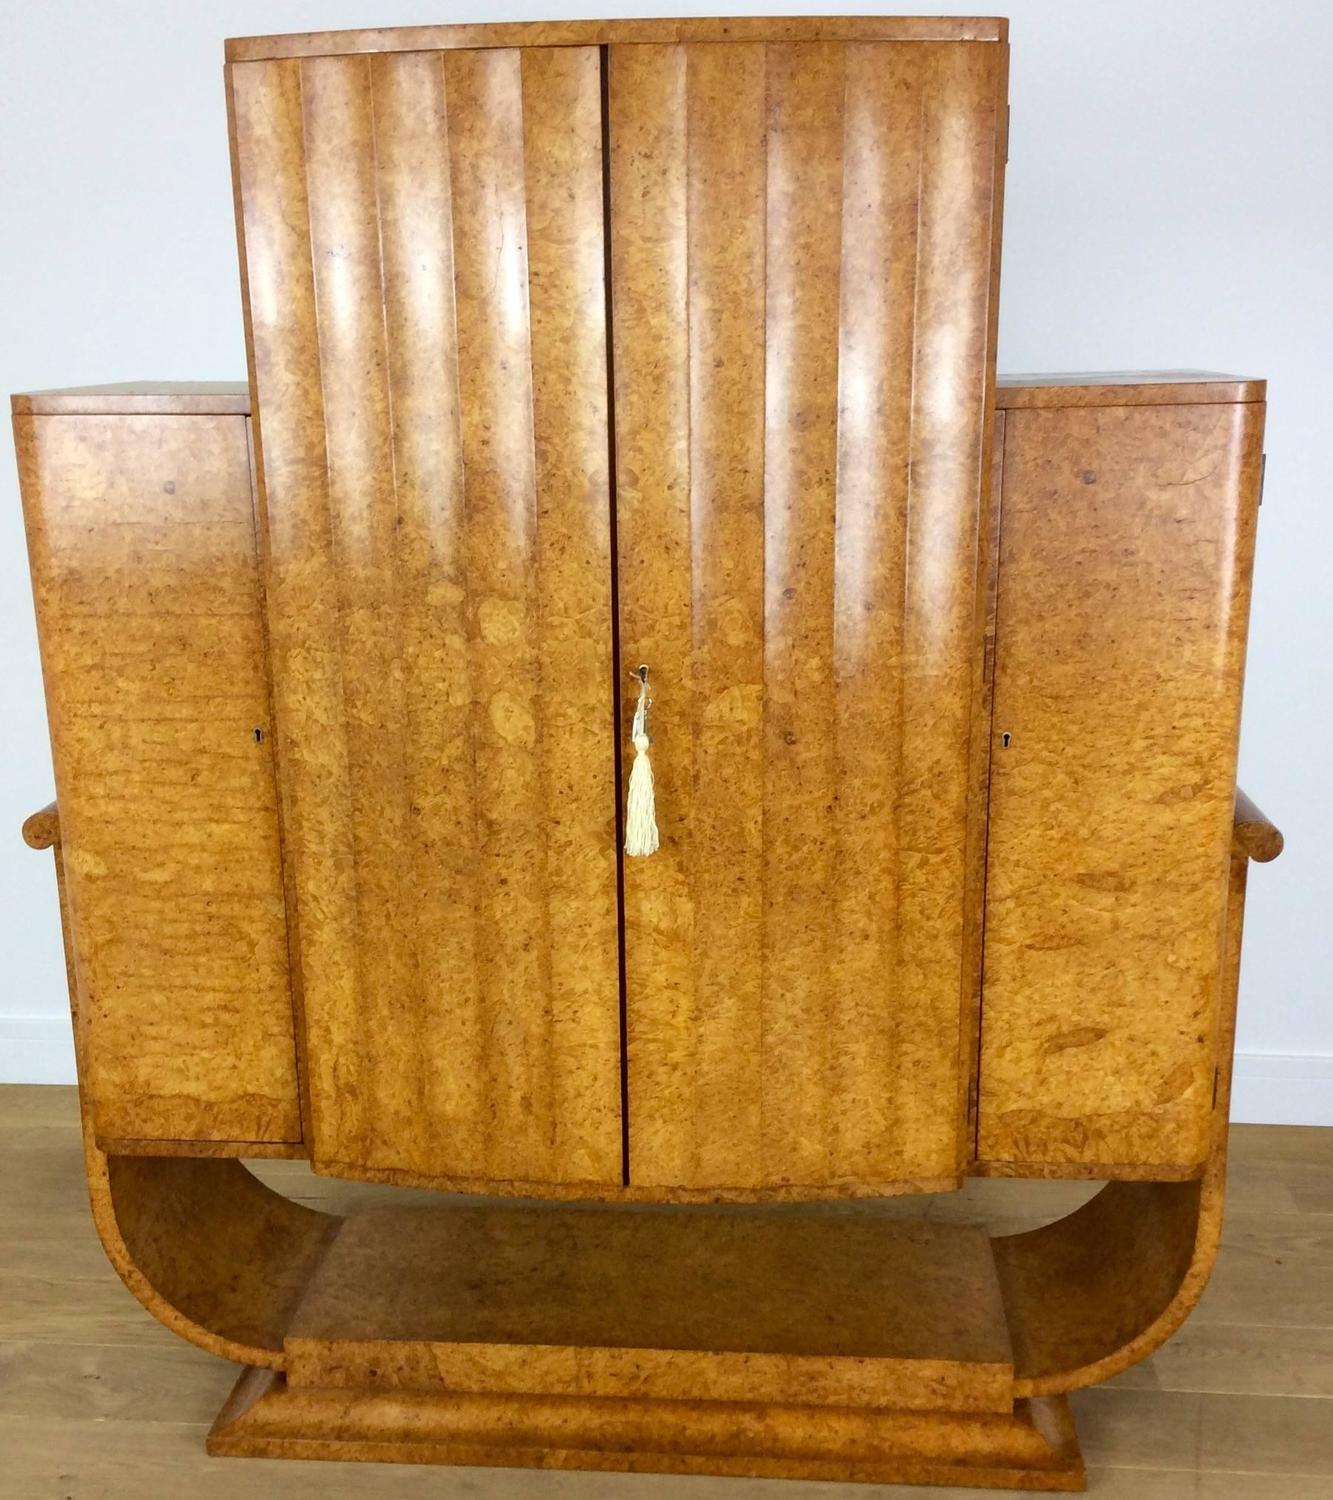 Epstein art deco dry bar for sale at 1stdibs - Epstein art deco furniture ...